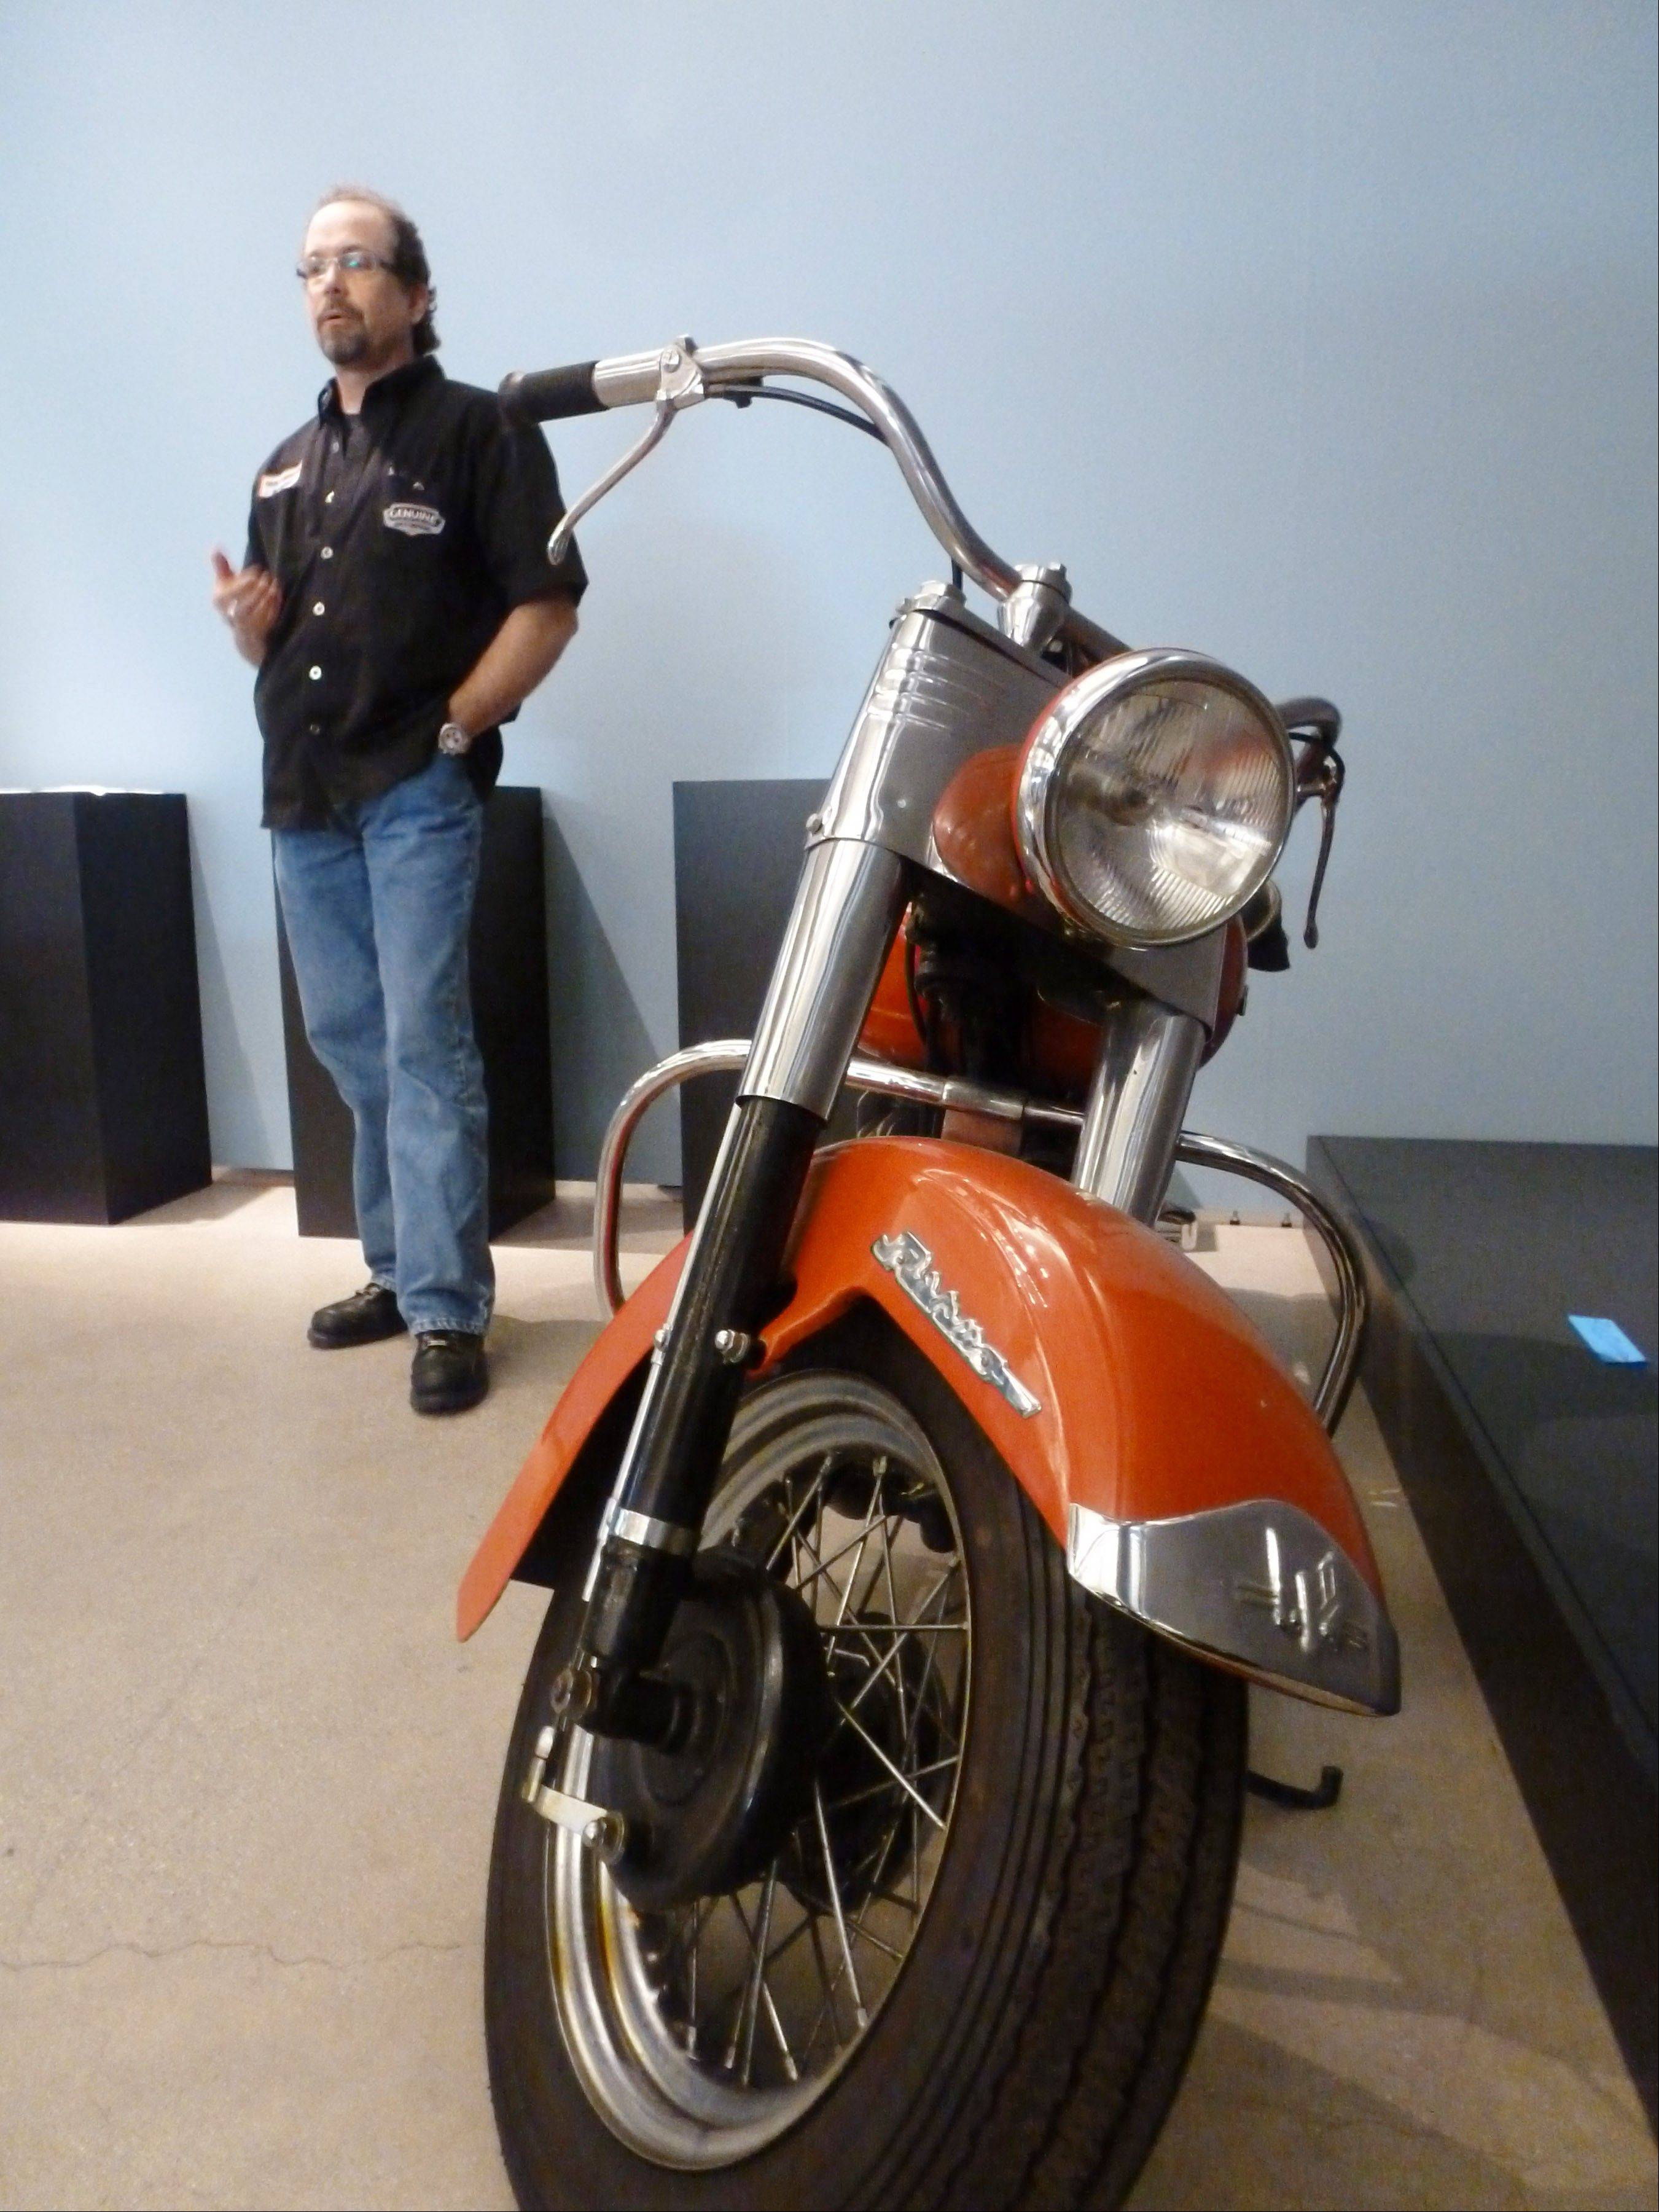 Bill Davidson, great-grandson of Harley-Davidson Motor Company co-founder, shows off the Rikuo motorcycle at the Harley-Davidson museum in Milwaukee. The Rikuo model was the first motorcycle manufactured in Japan.